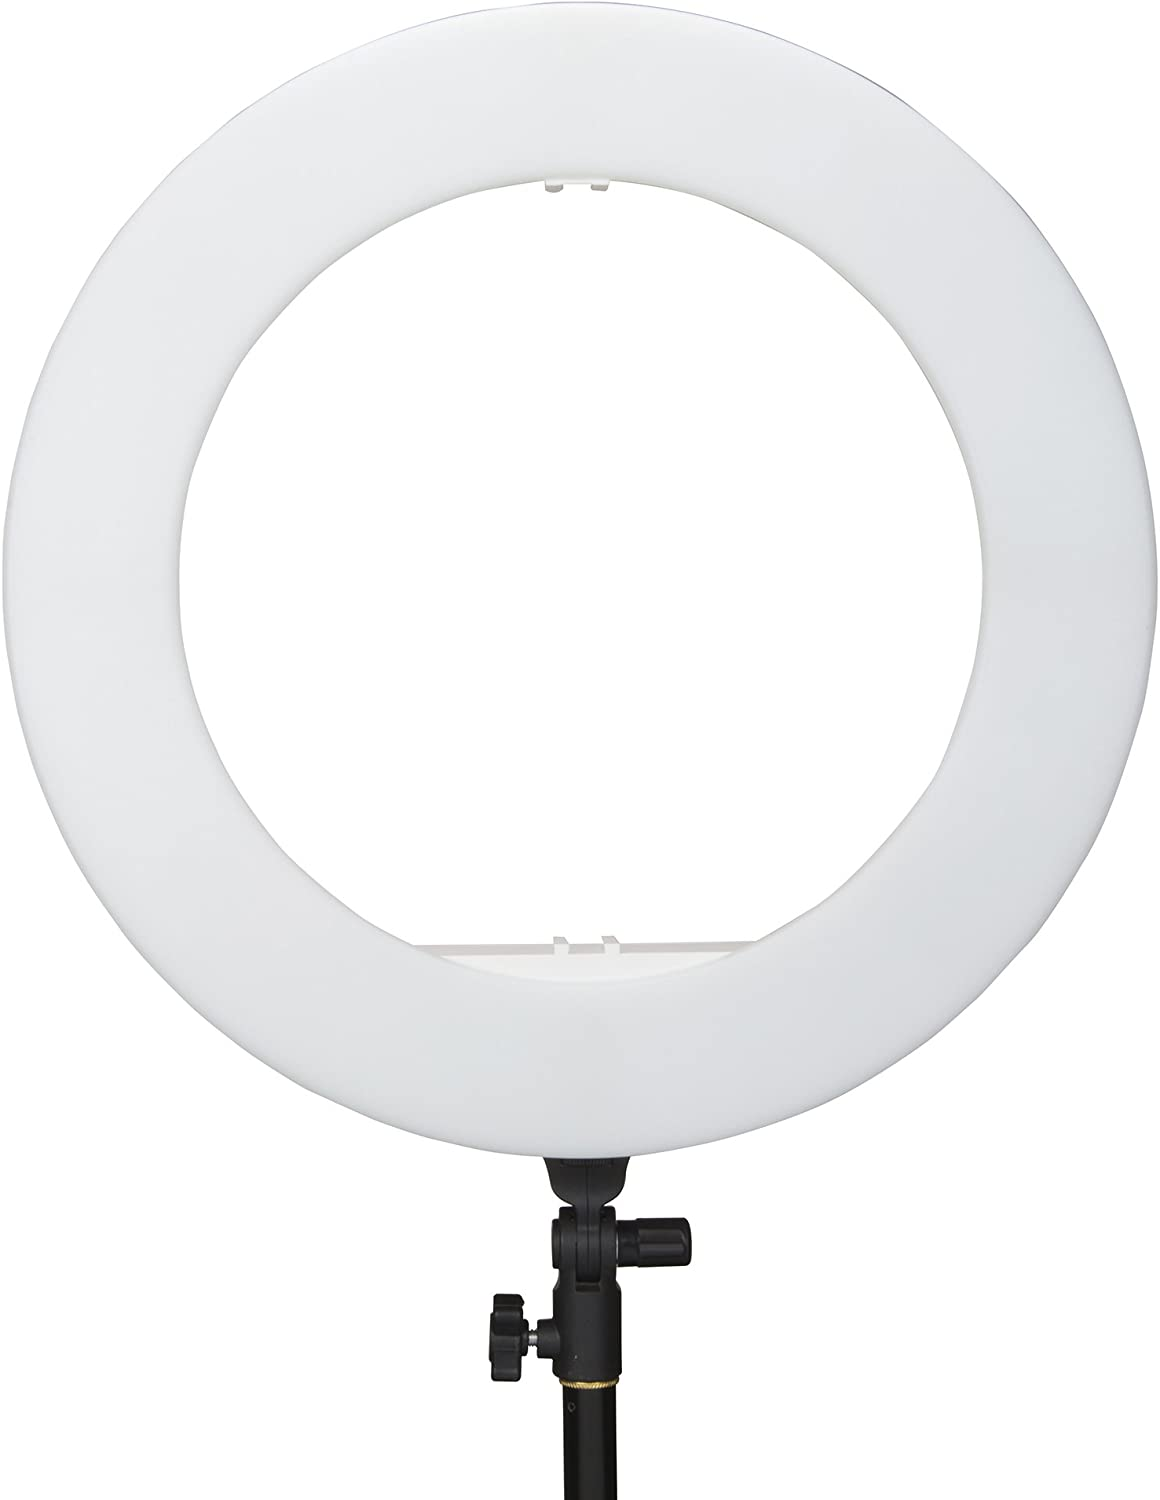 Black Bi-Color LED Ring Light Interfit LEDR48B Studio Essentials Dimmable